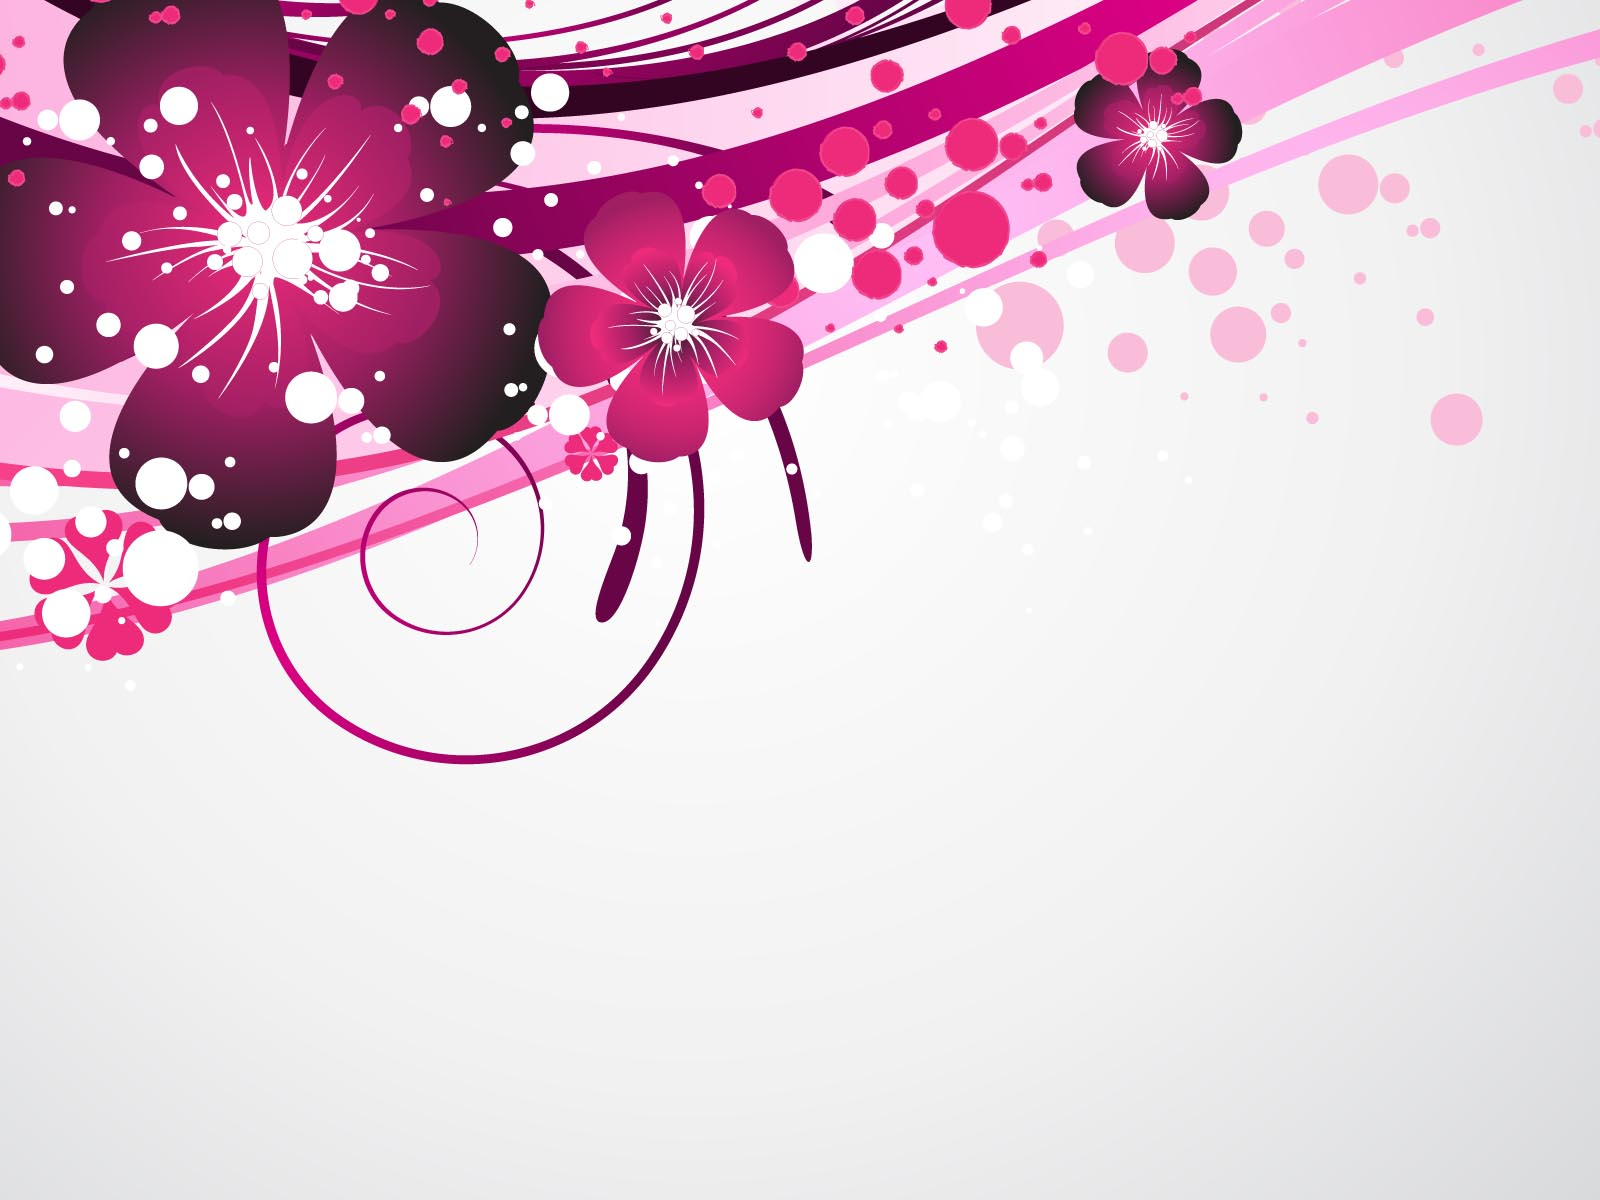 purple floral design backgrounds design templates free